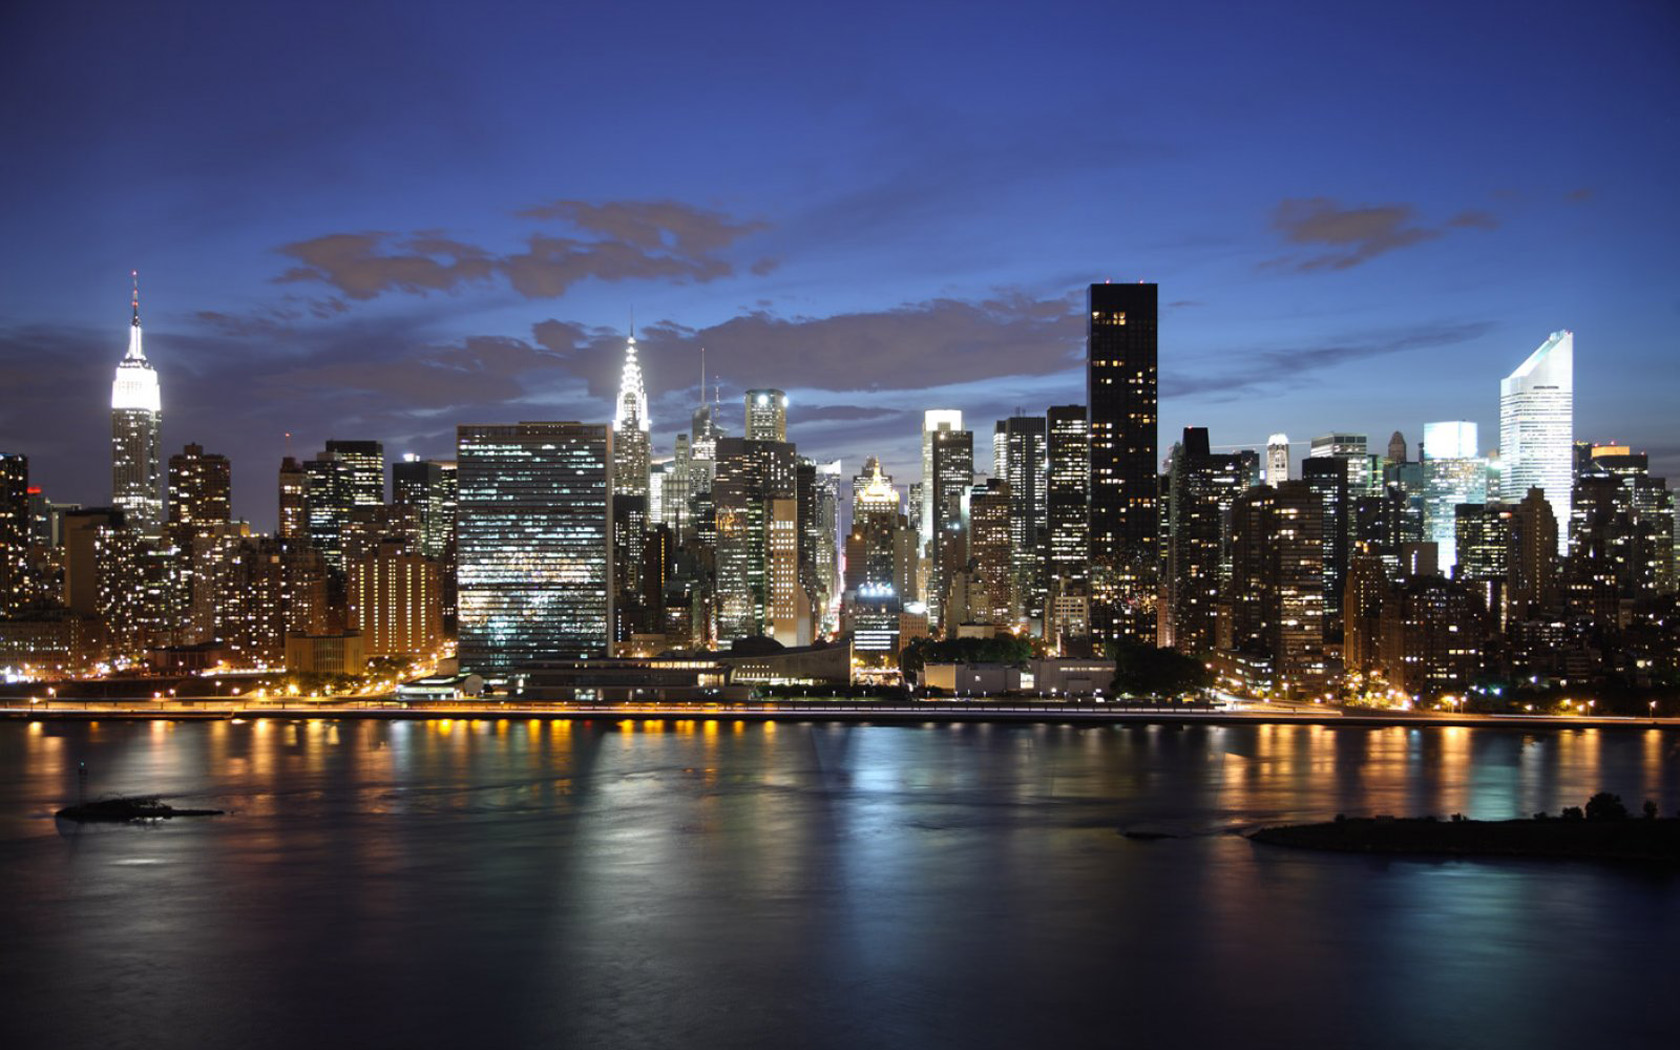 New York Skyline At Night 1680x1050 wallpaper